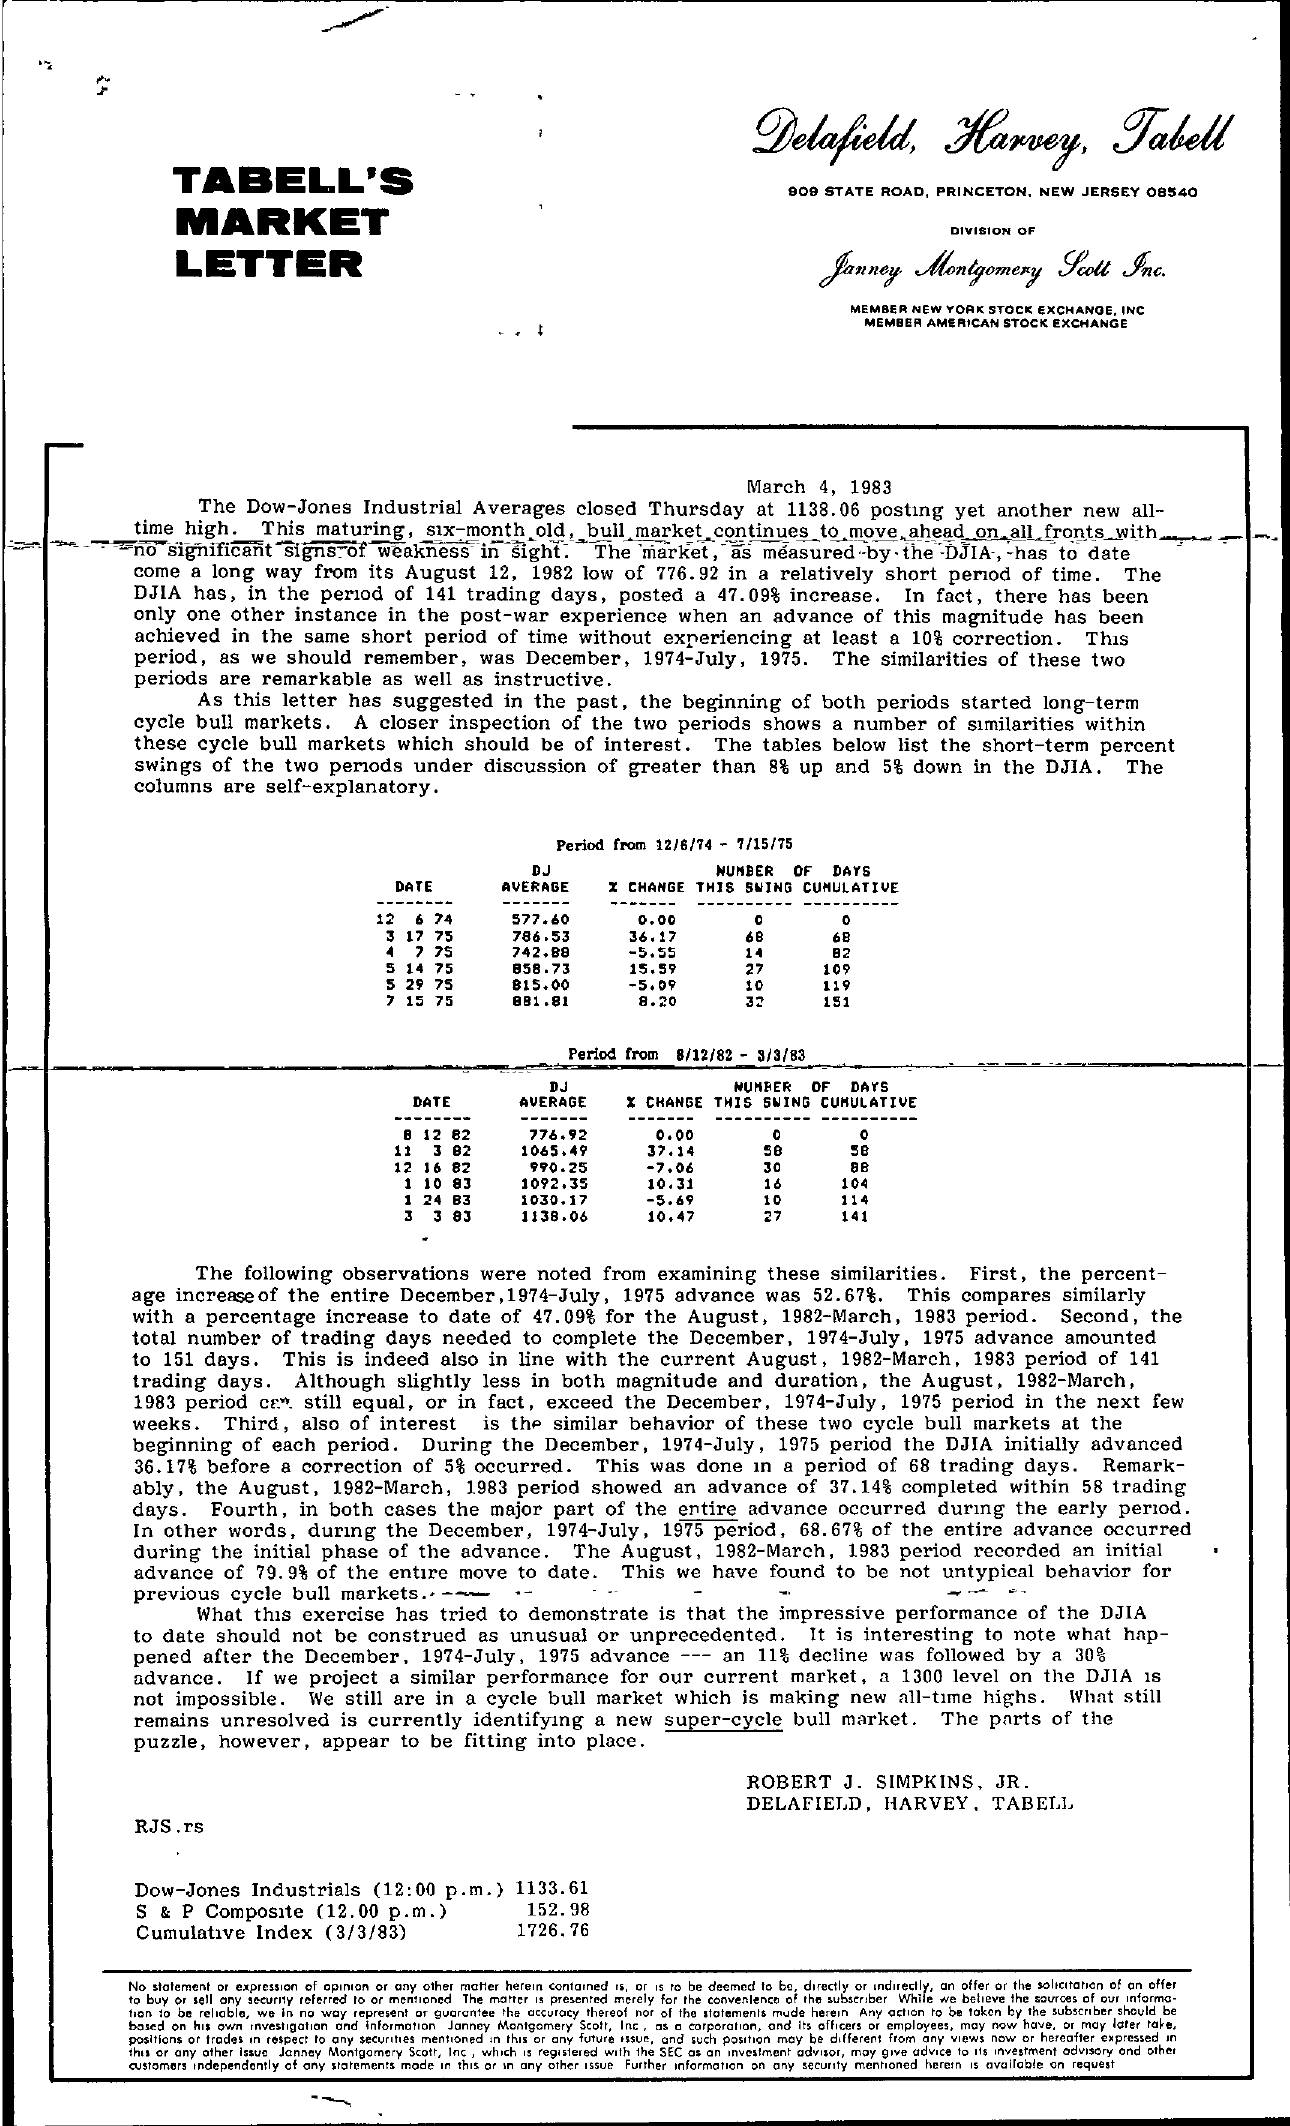 Tabell's Market Letter - March 04, 1983